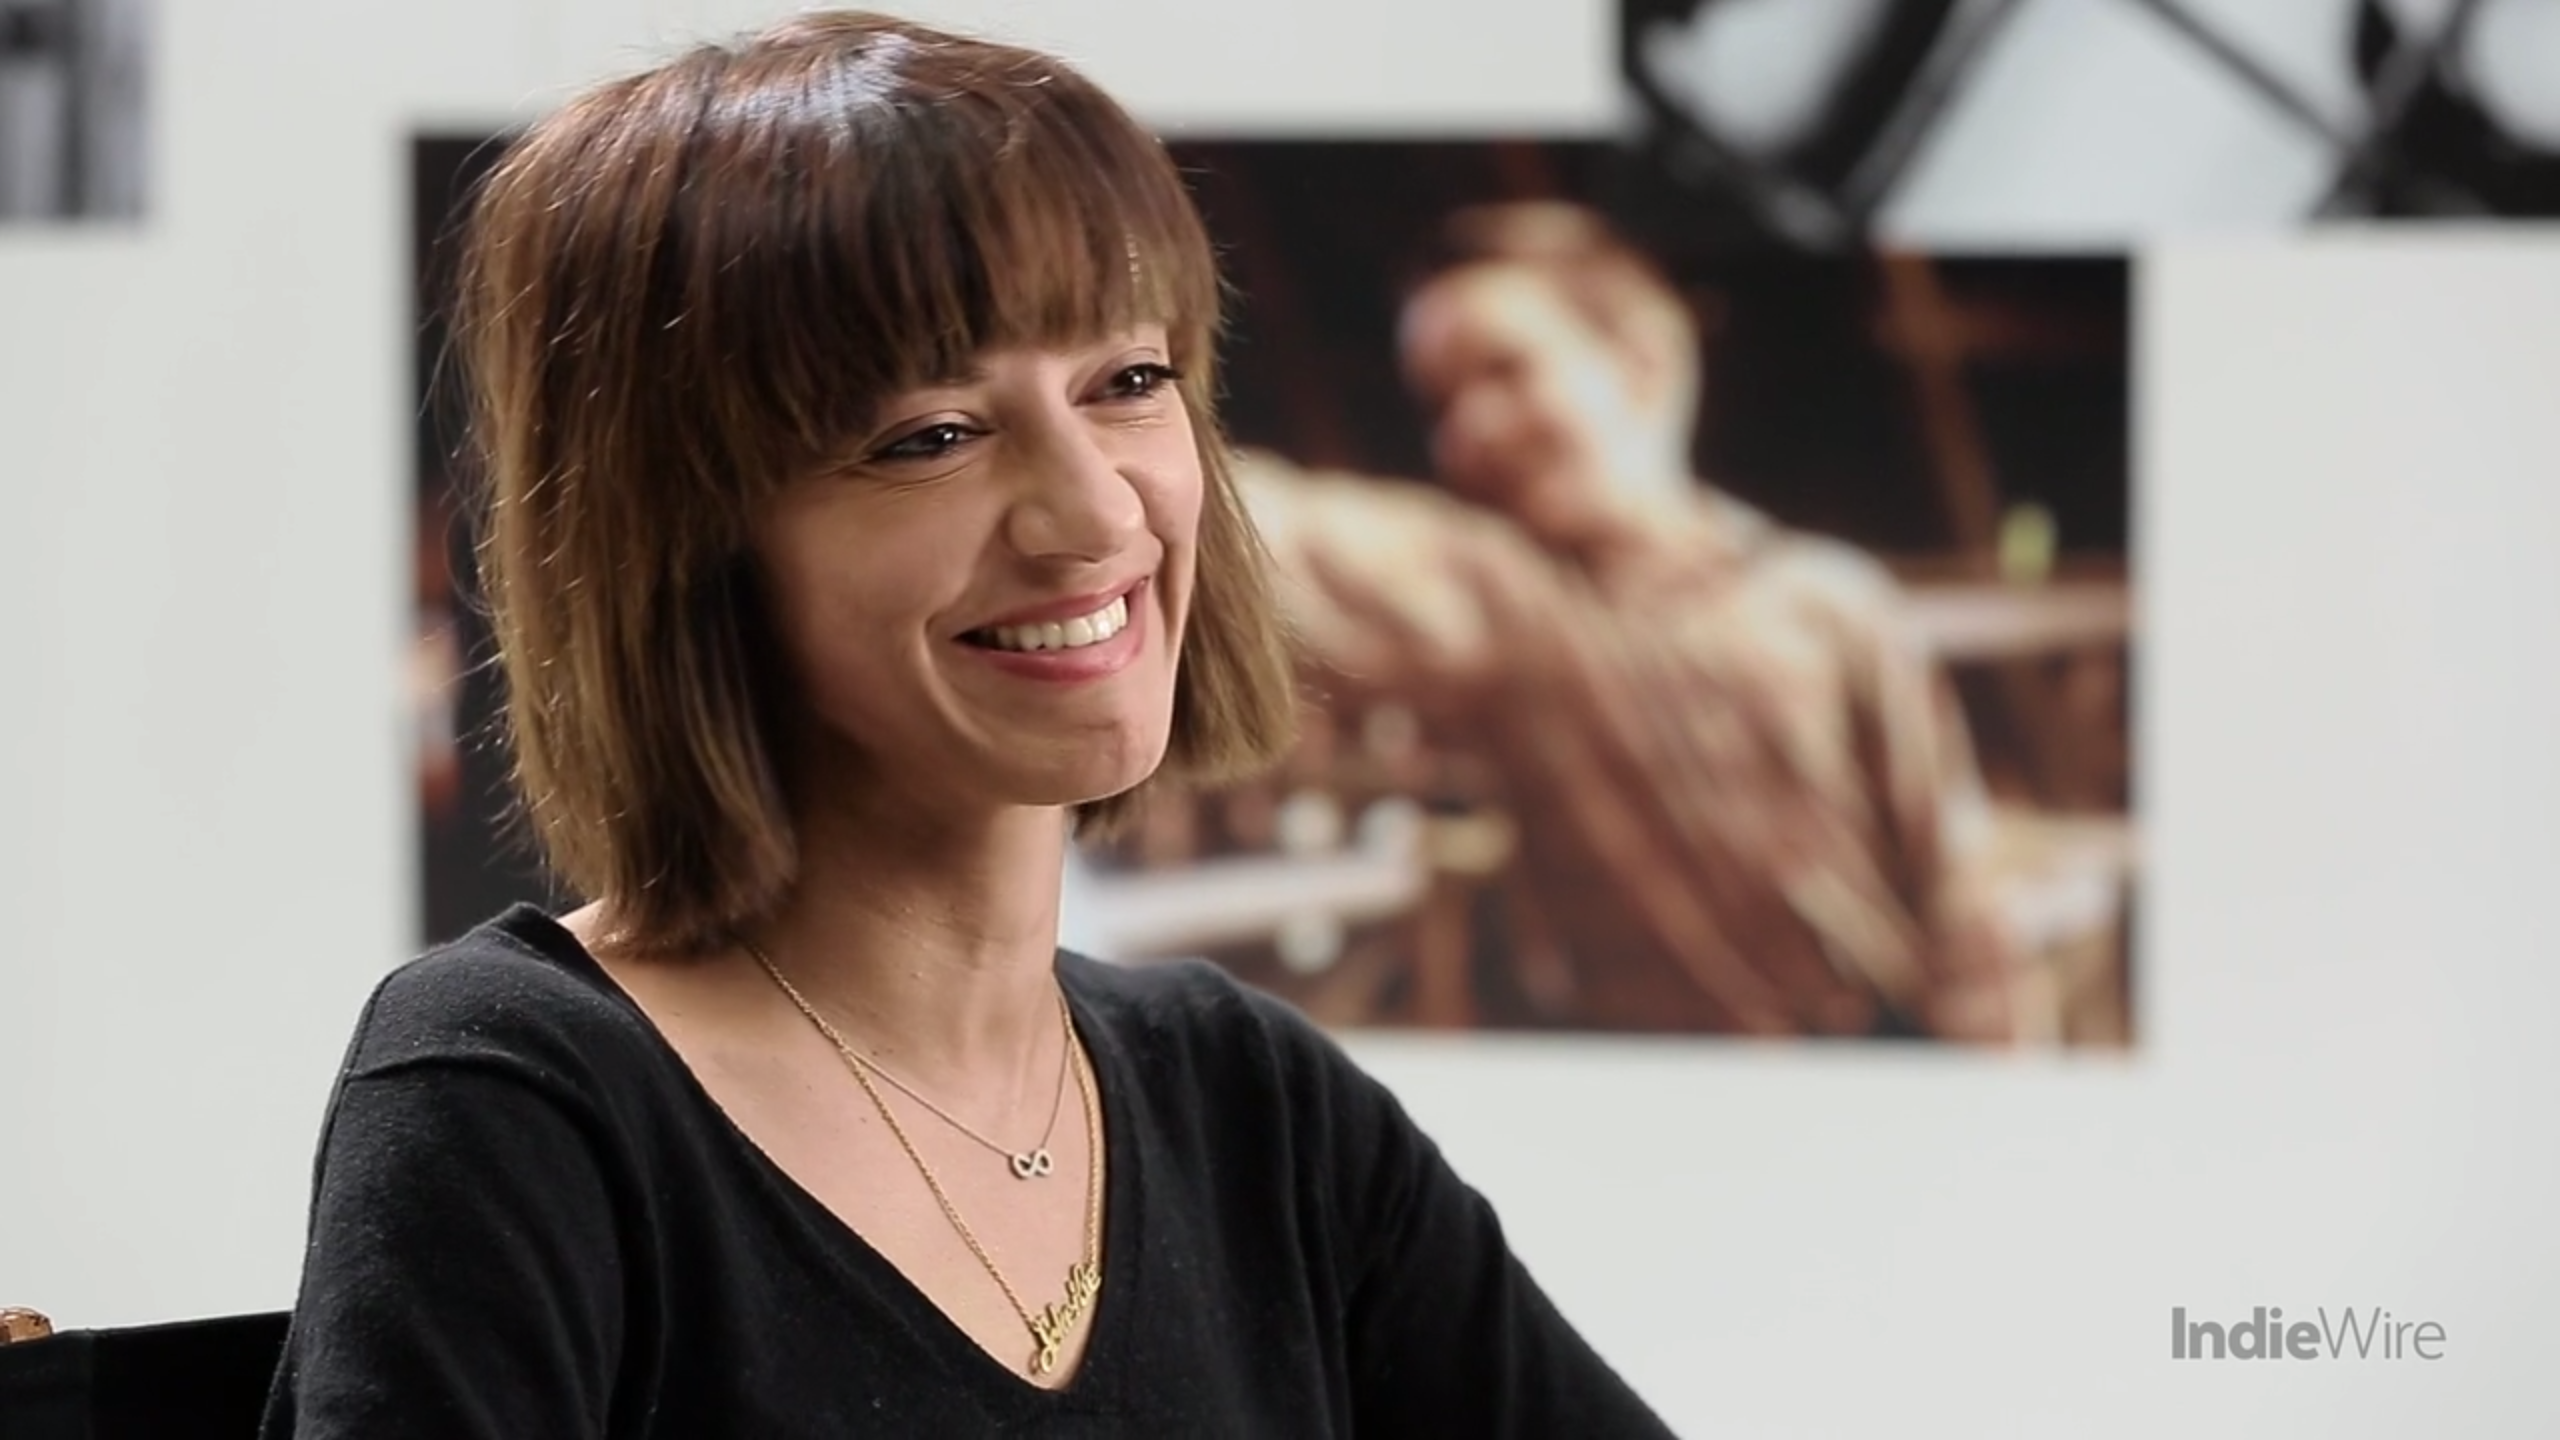 the life and works of american film director ana lily amirpour